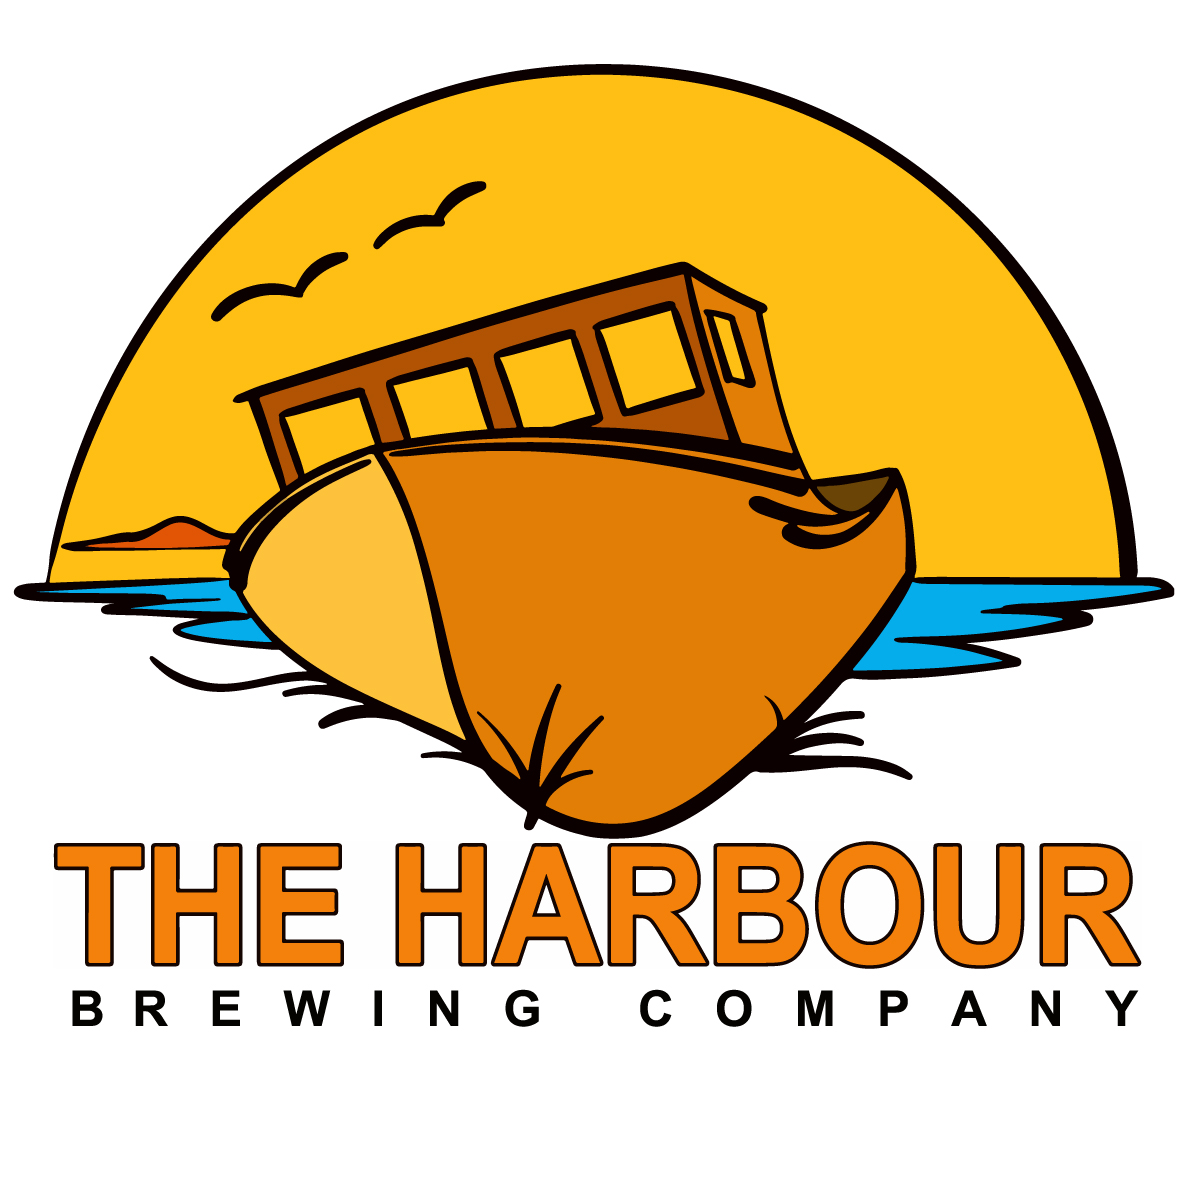 The Harbour Brewing Company